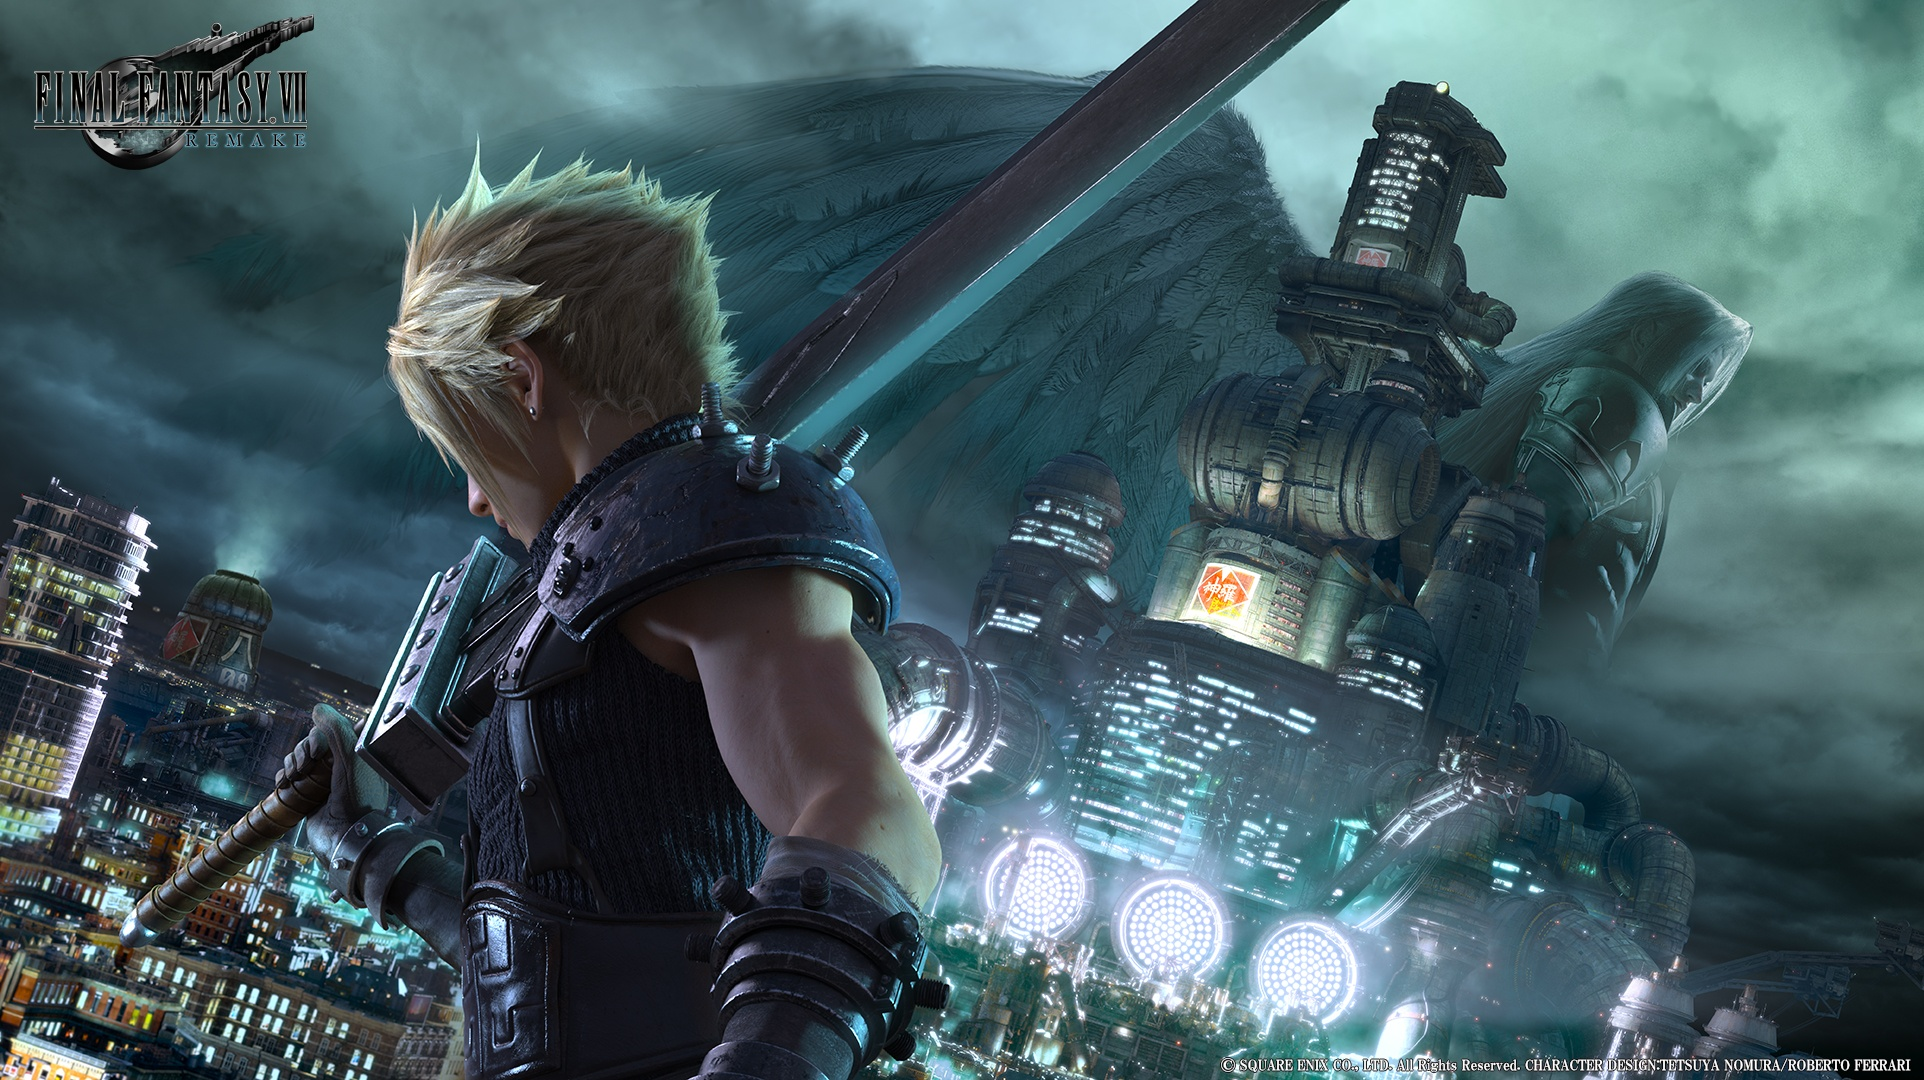 Final Fantasy VII trailer looks great, now please release the game